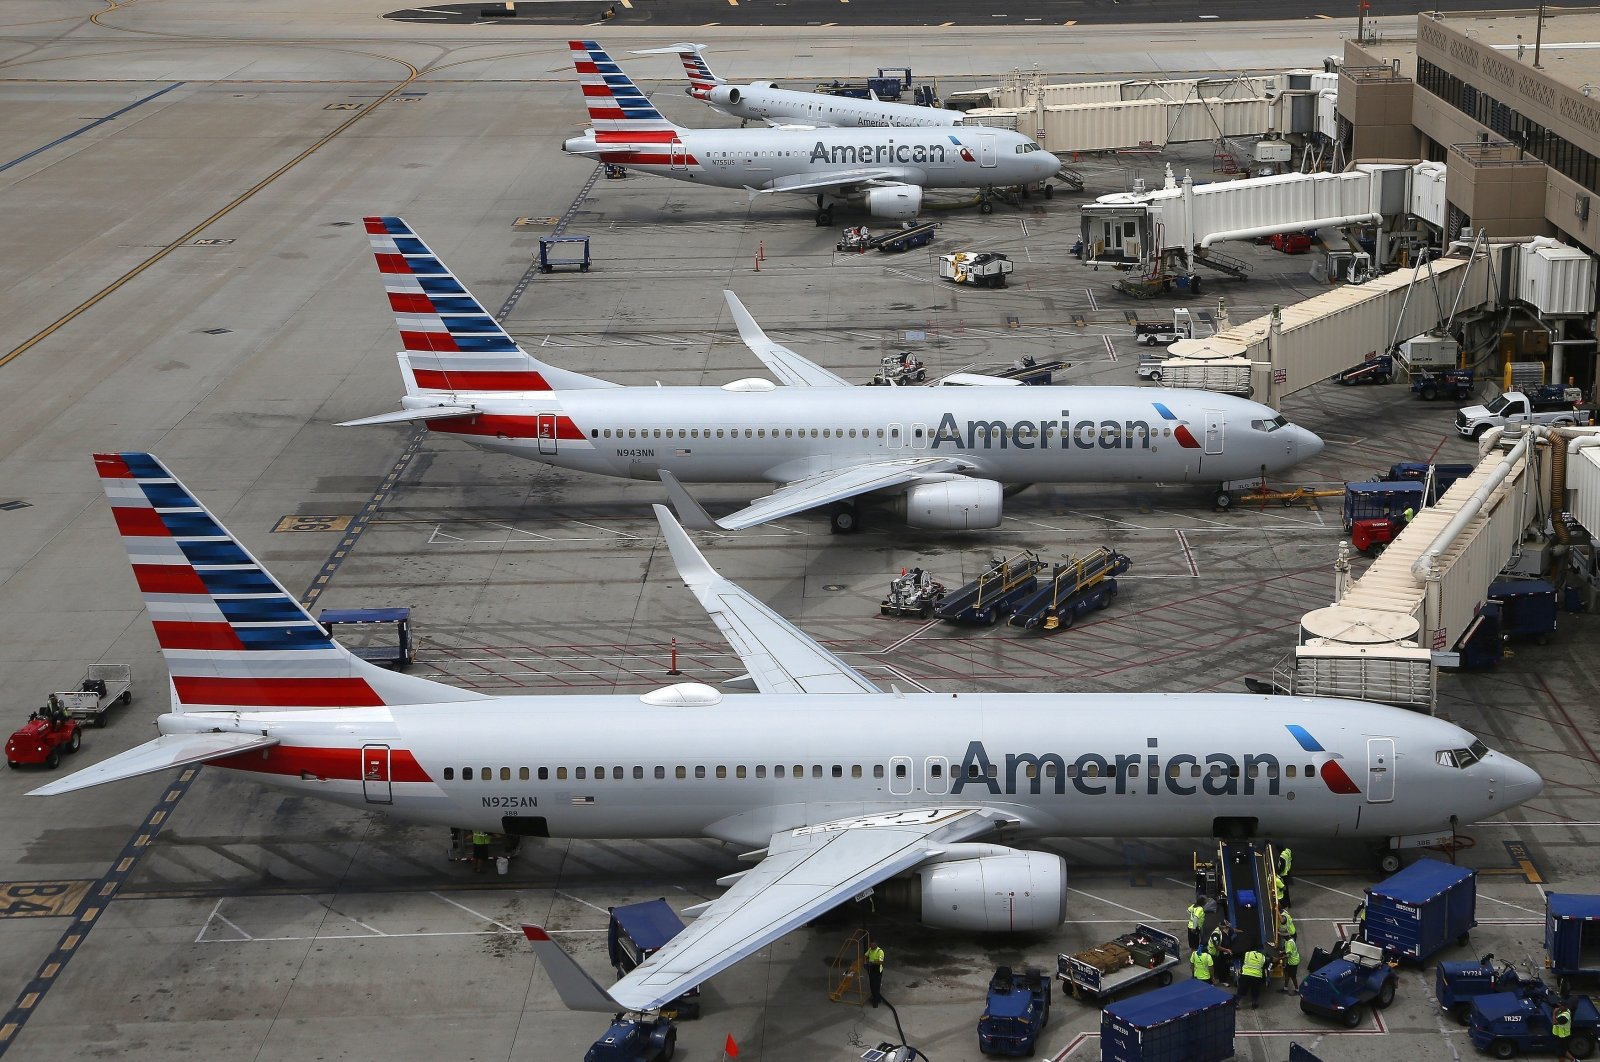 American Airlines planes are parked on the tarmac at Phoenix Sky Harbor International Airport, Phoenix, U.S., July 17, 2019. (AP Photo)